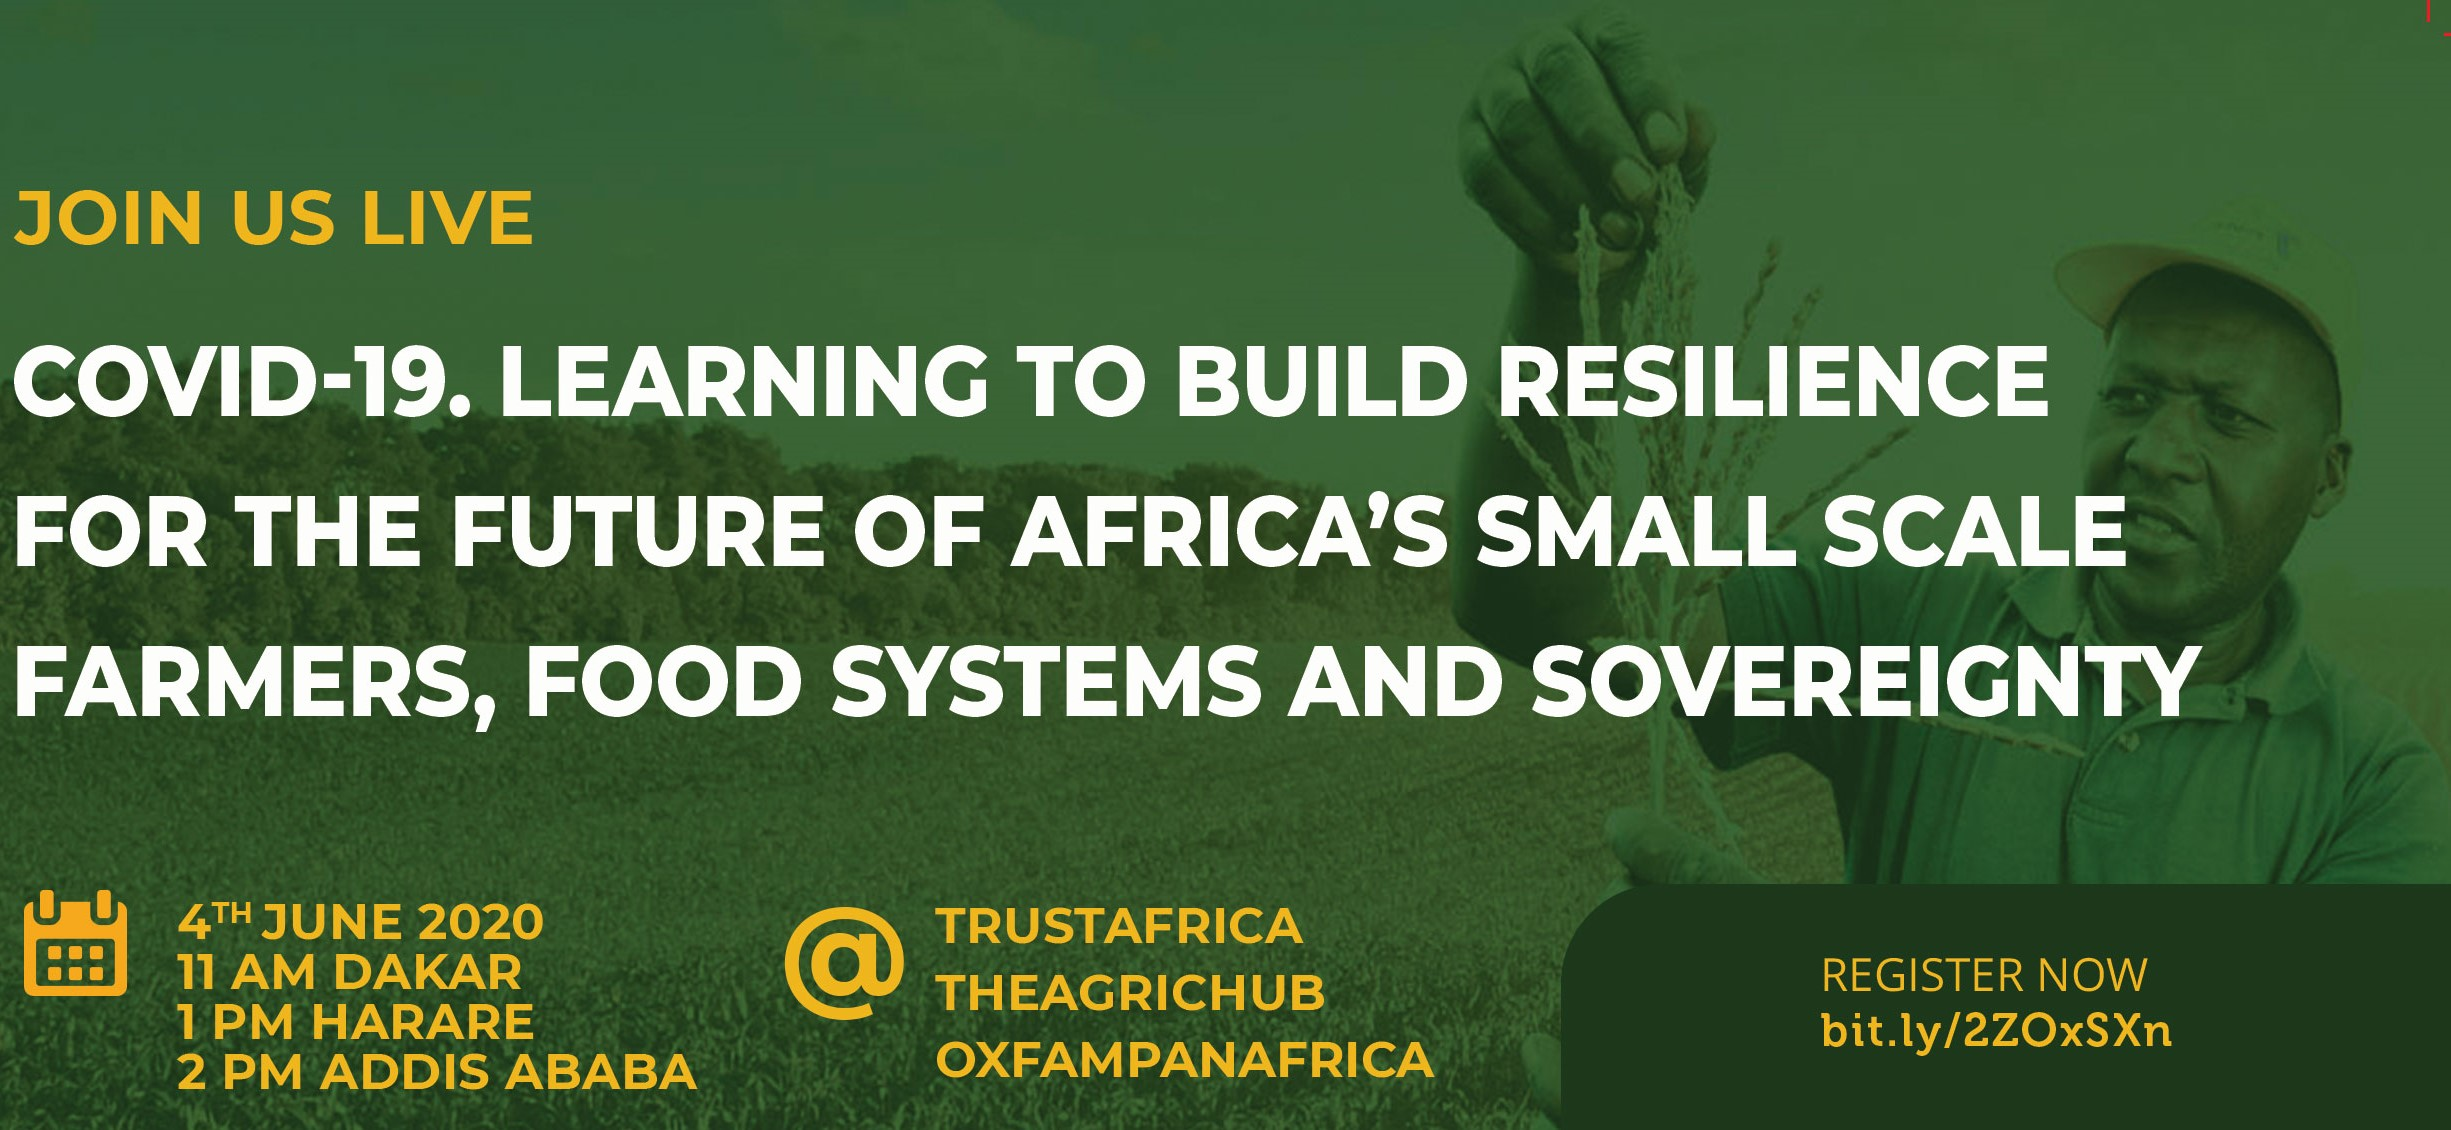 Covid-19. Learning to build resilience for the future of Africa's small scale farmers, food systems and sovereignty